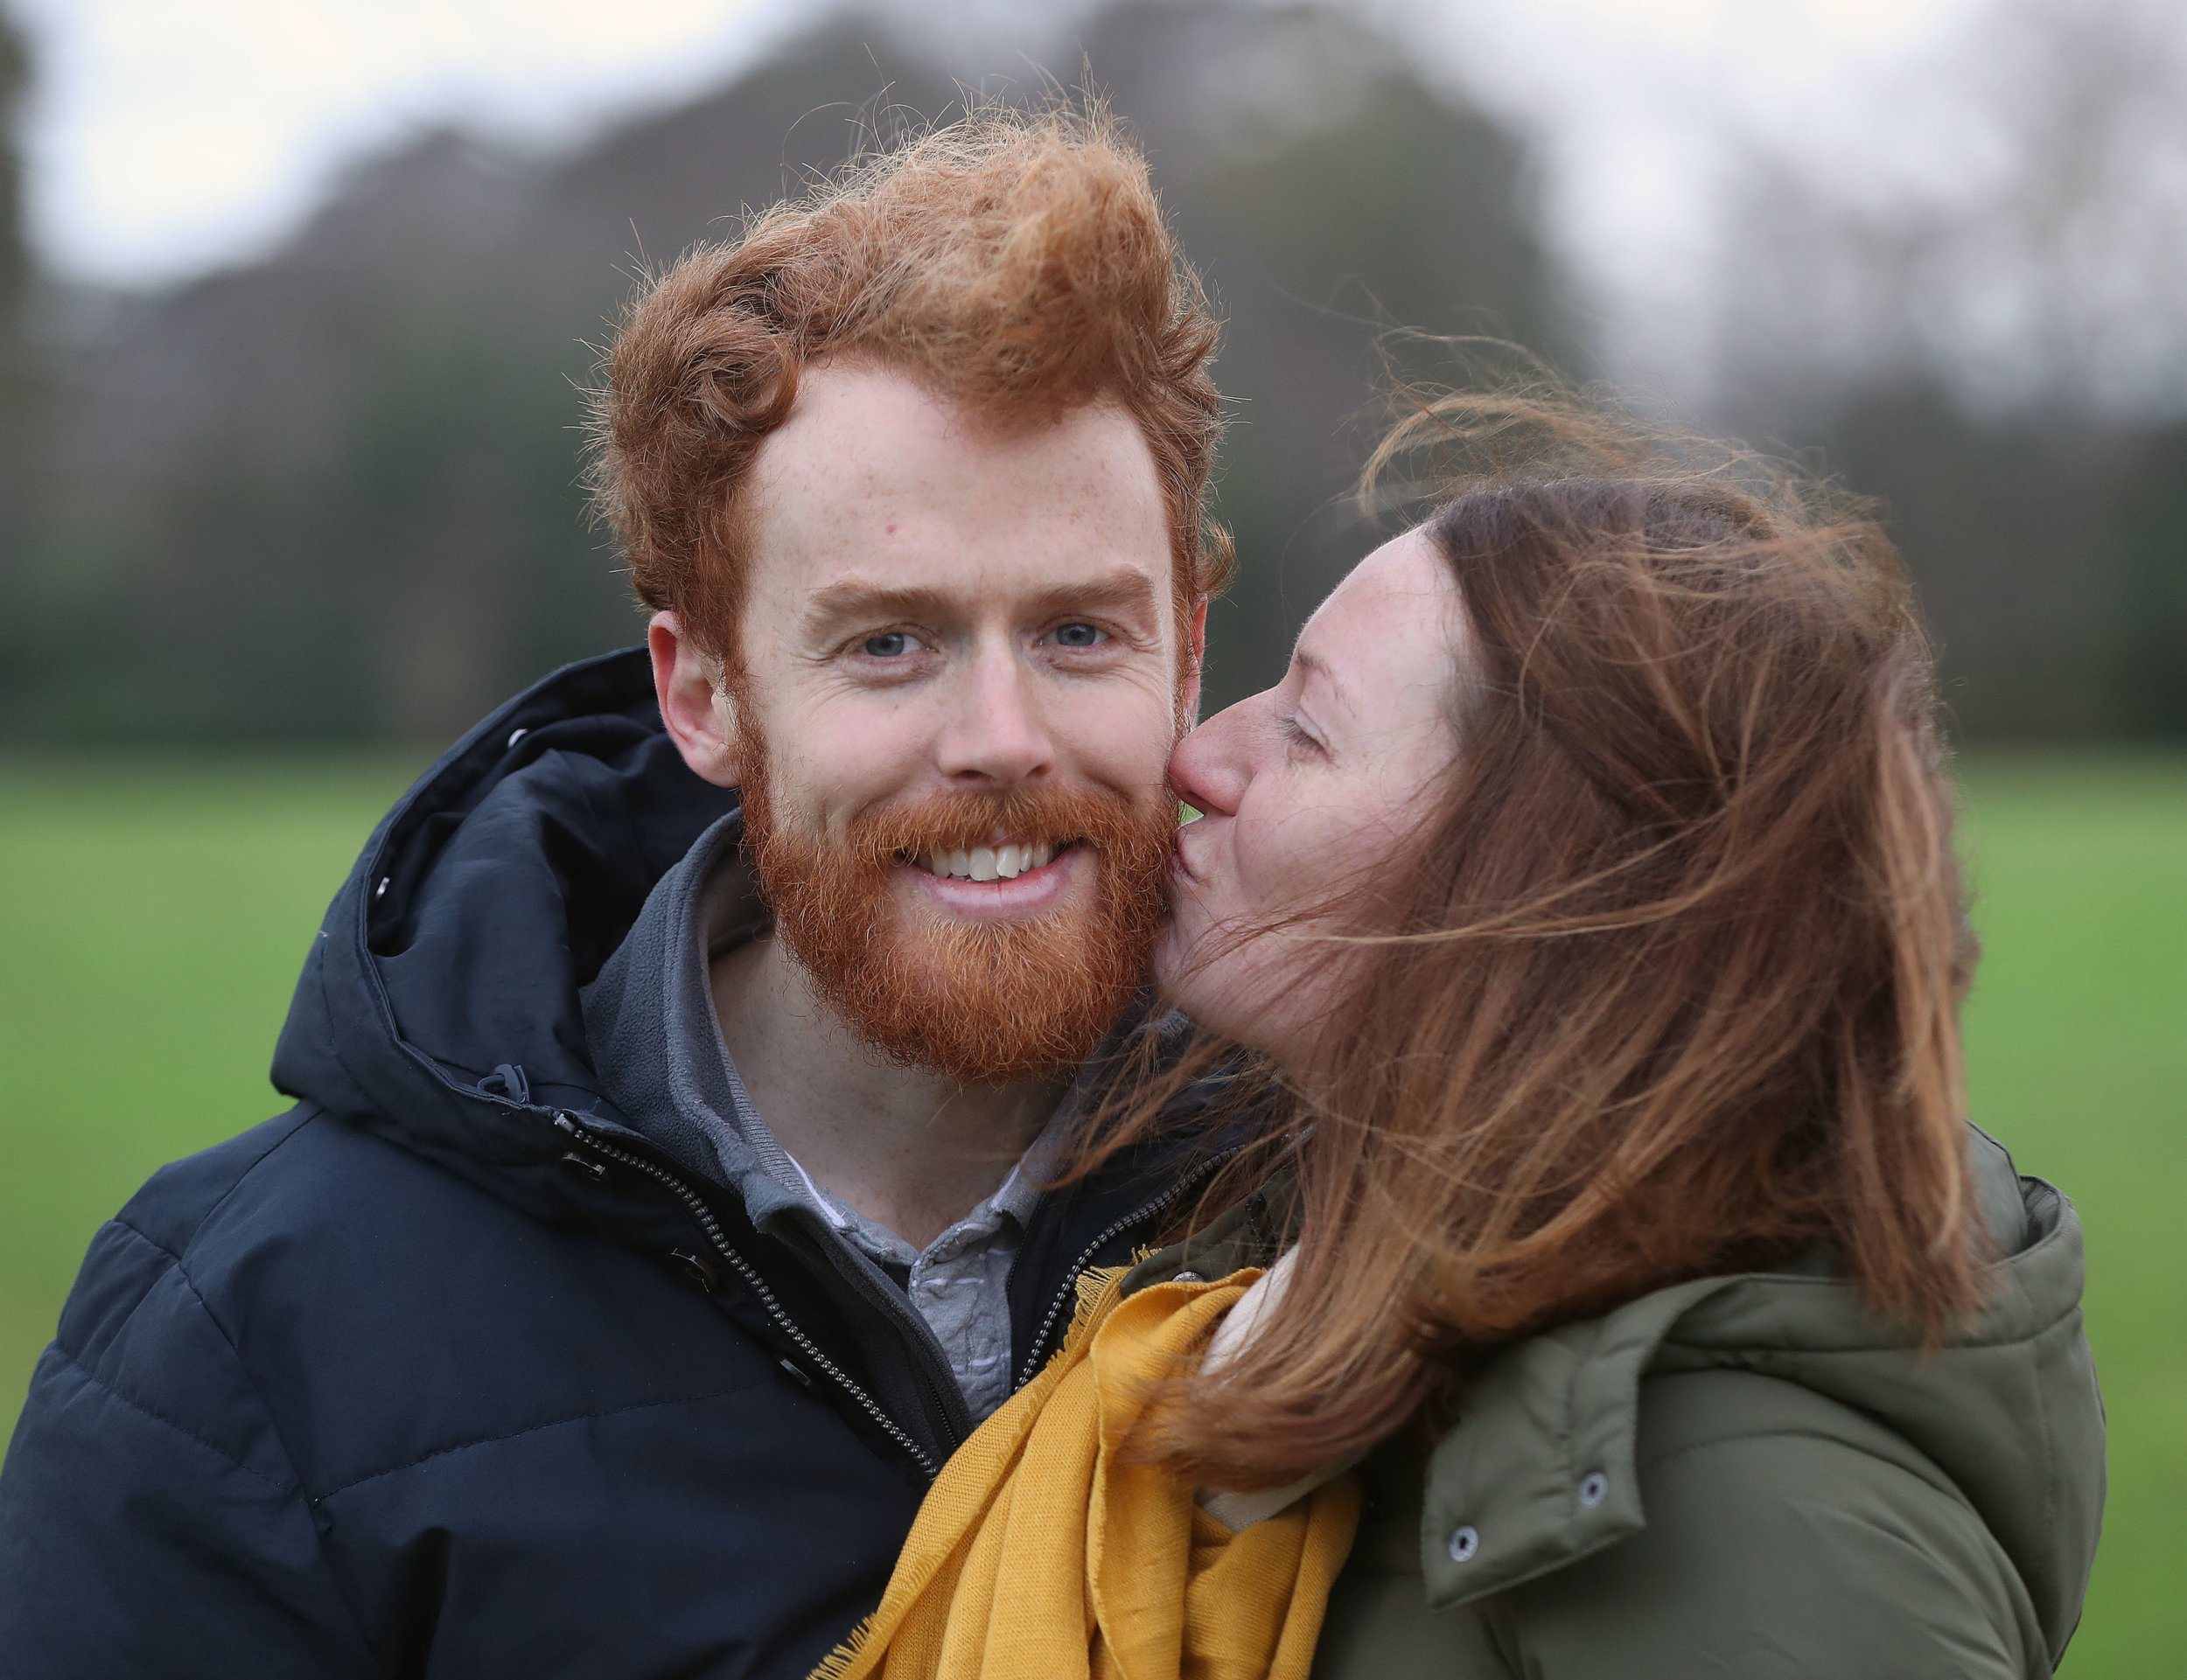 Chris and Niamh Behan from Dublin take part in the annual Kiss a Ginger day at Phoenix park in Dublin. PRESS ASSOCIATION Photo. Picture date: Saturday January 12, 2019. Photo credit should read: Niall Carson/PA Wire